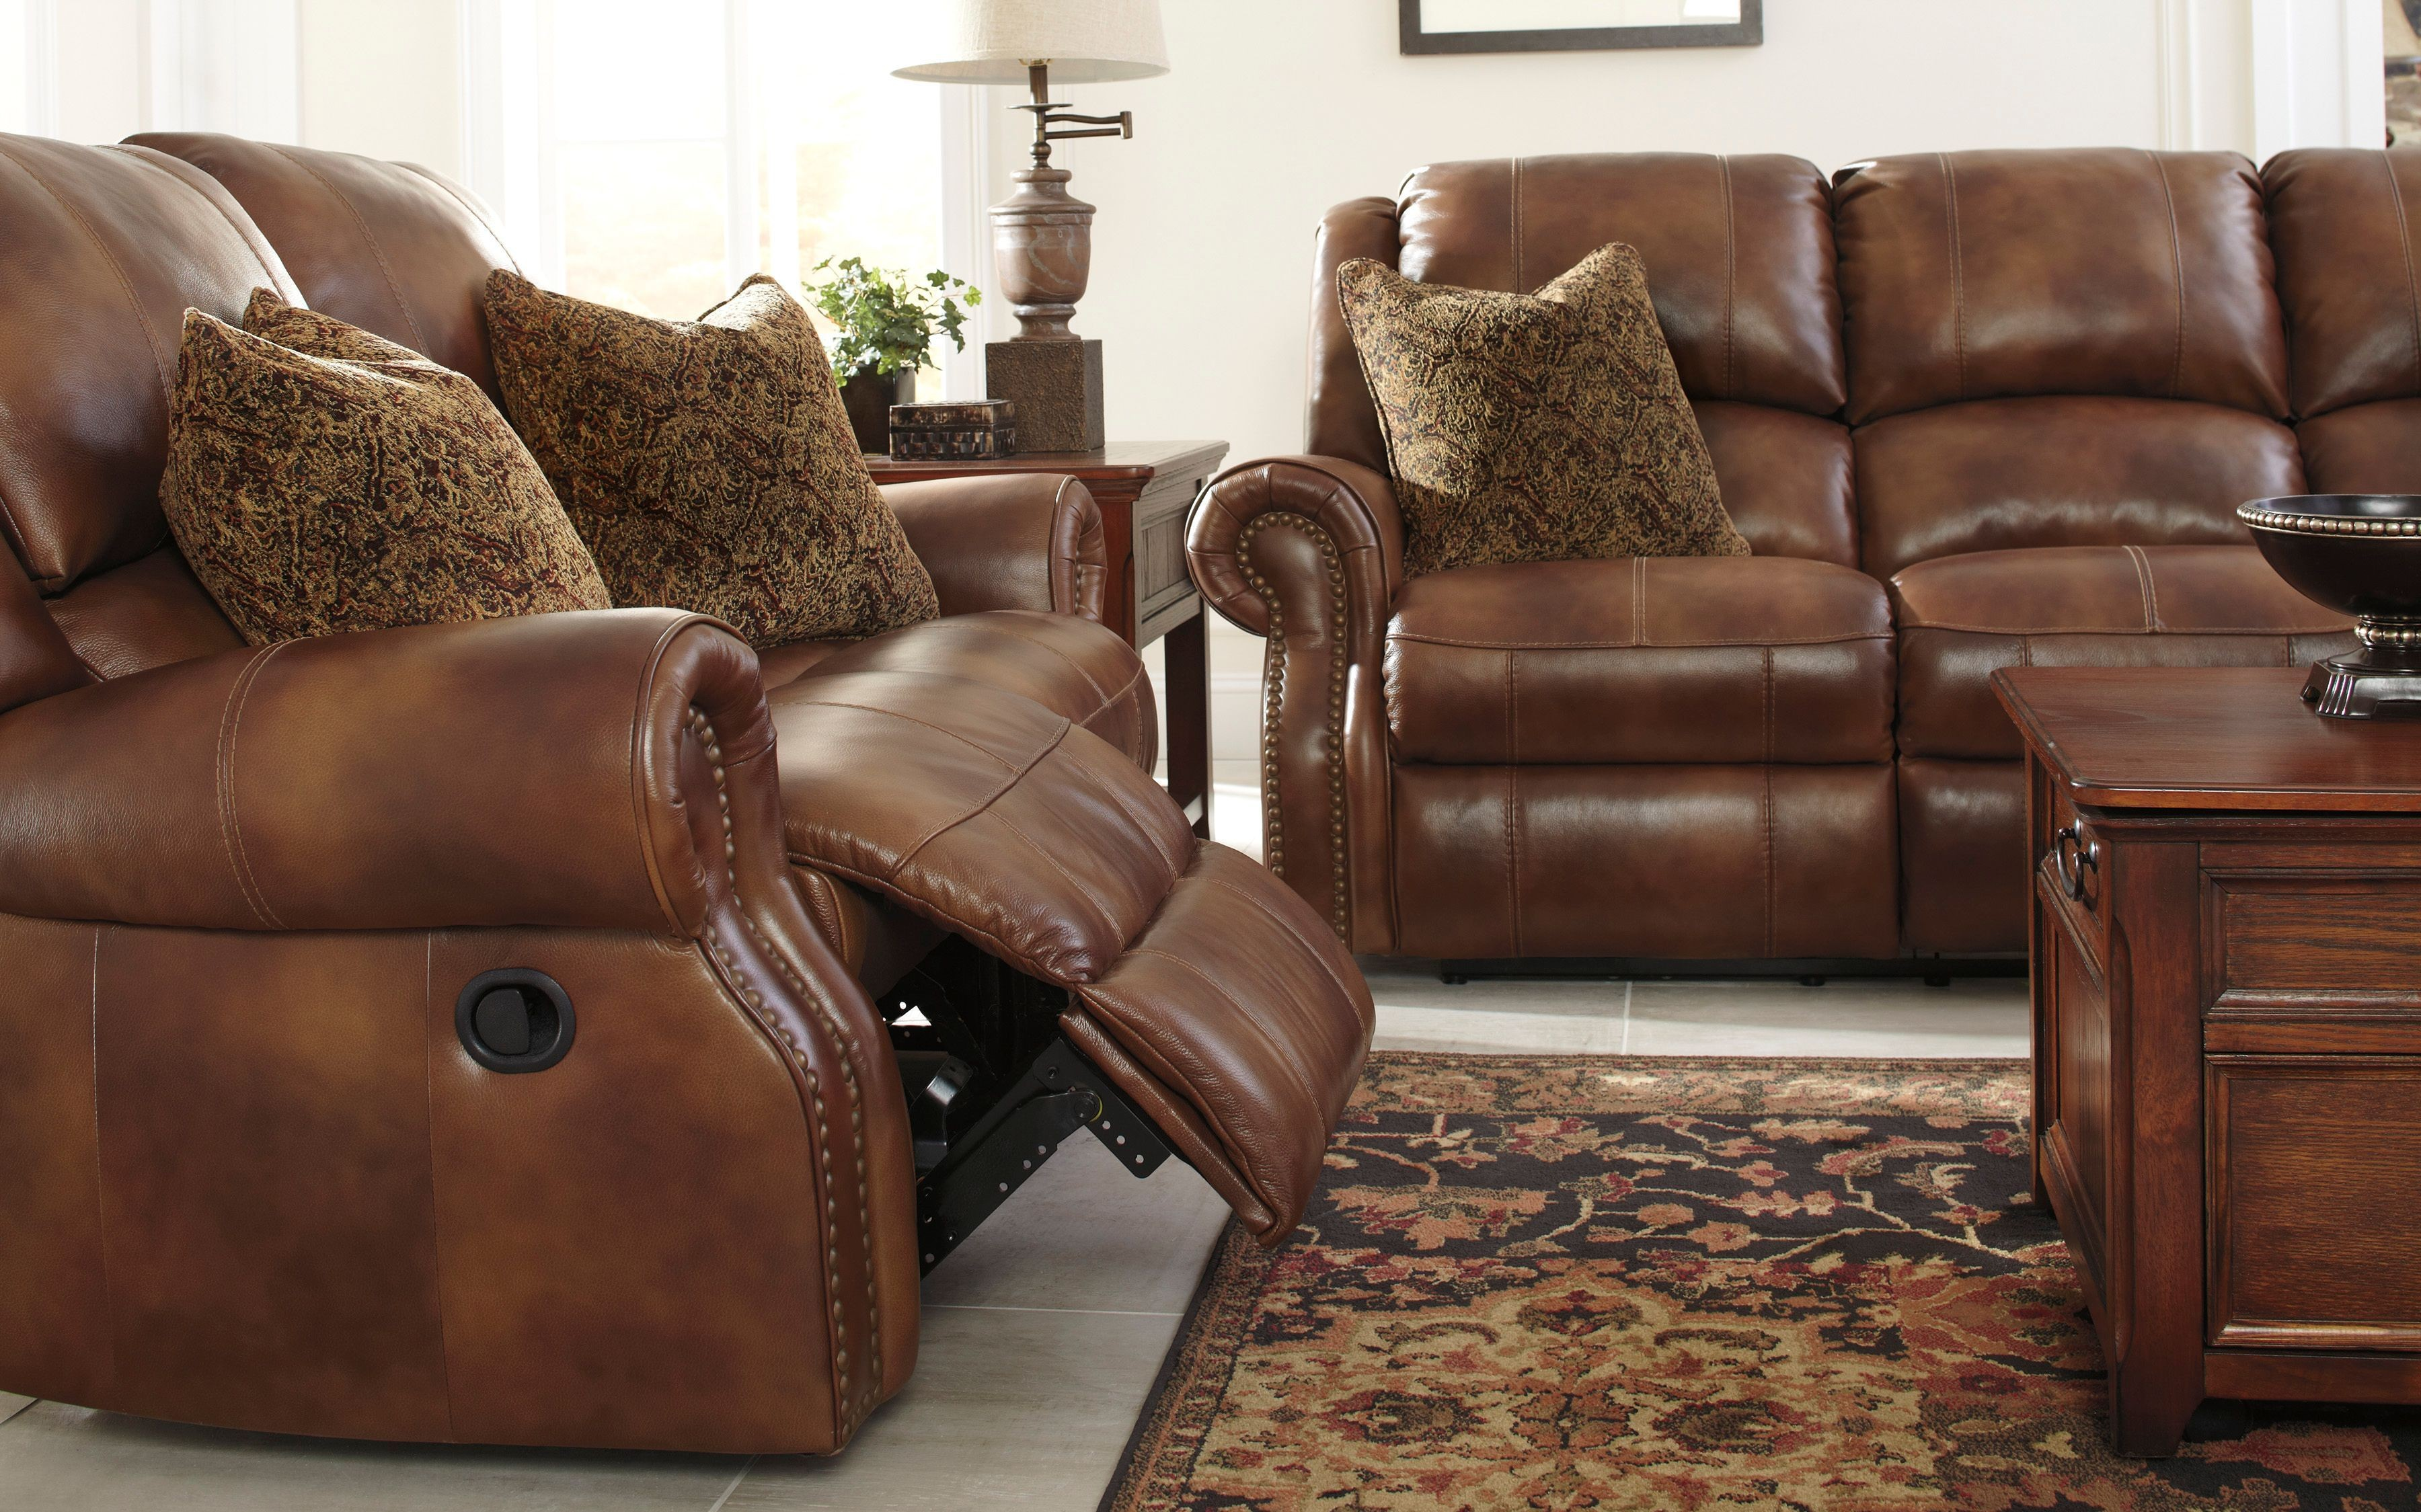 Walworth Auburn Reclining Living Room Set From Ashley